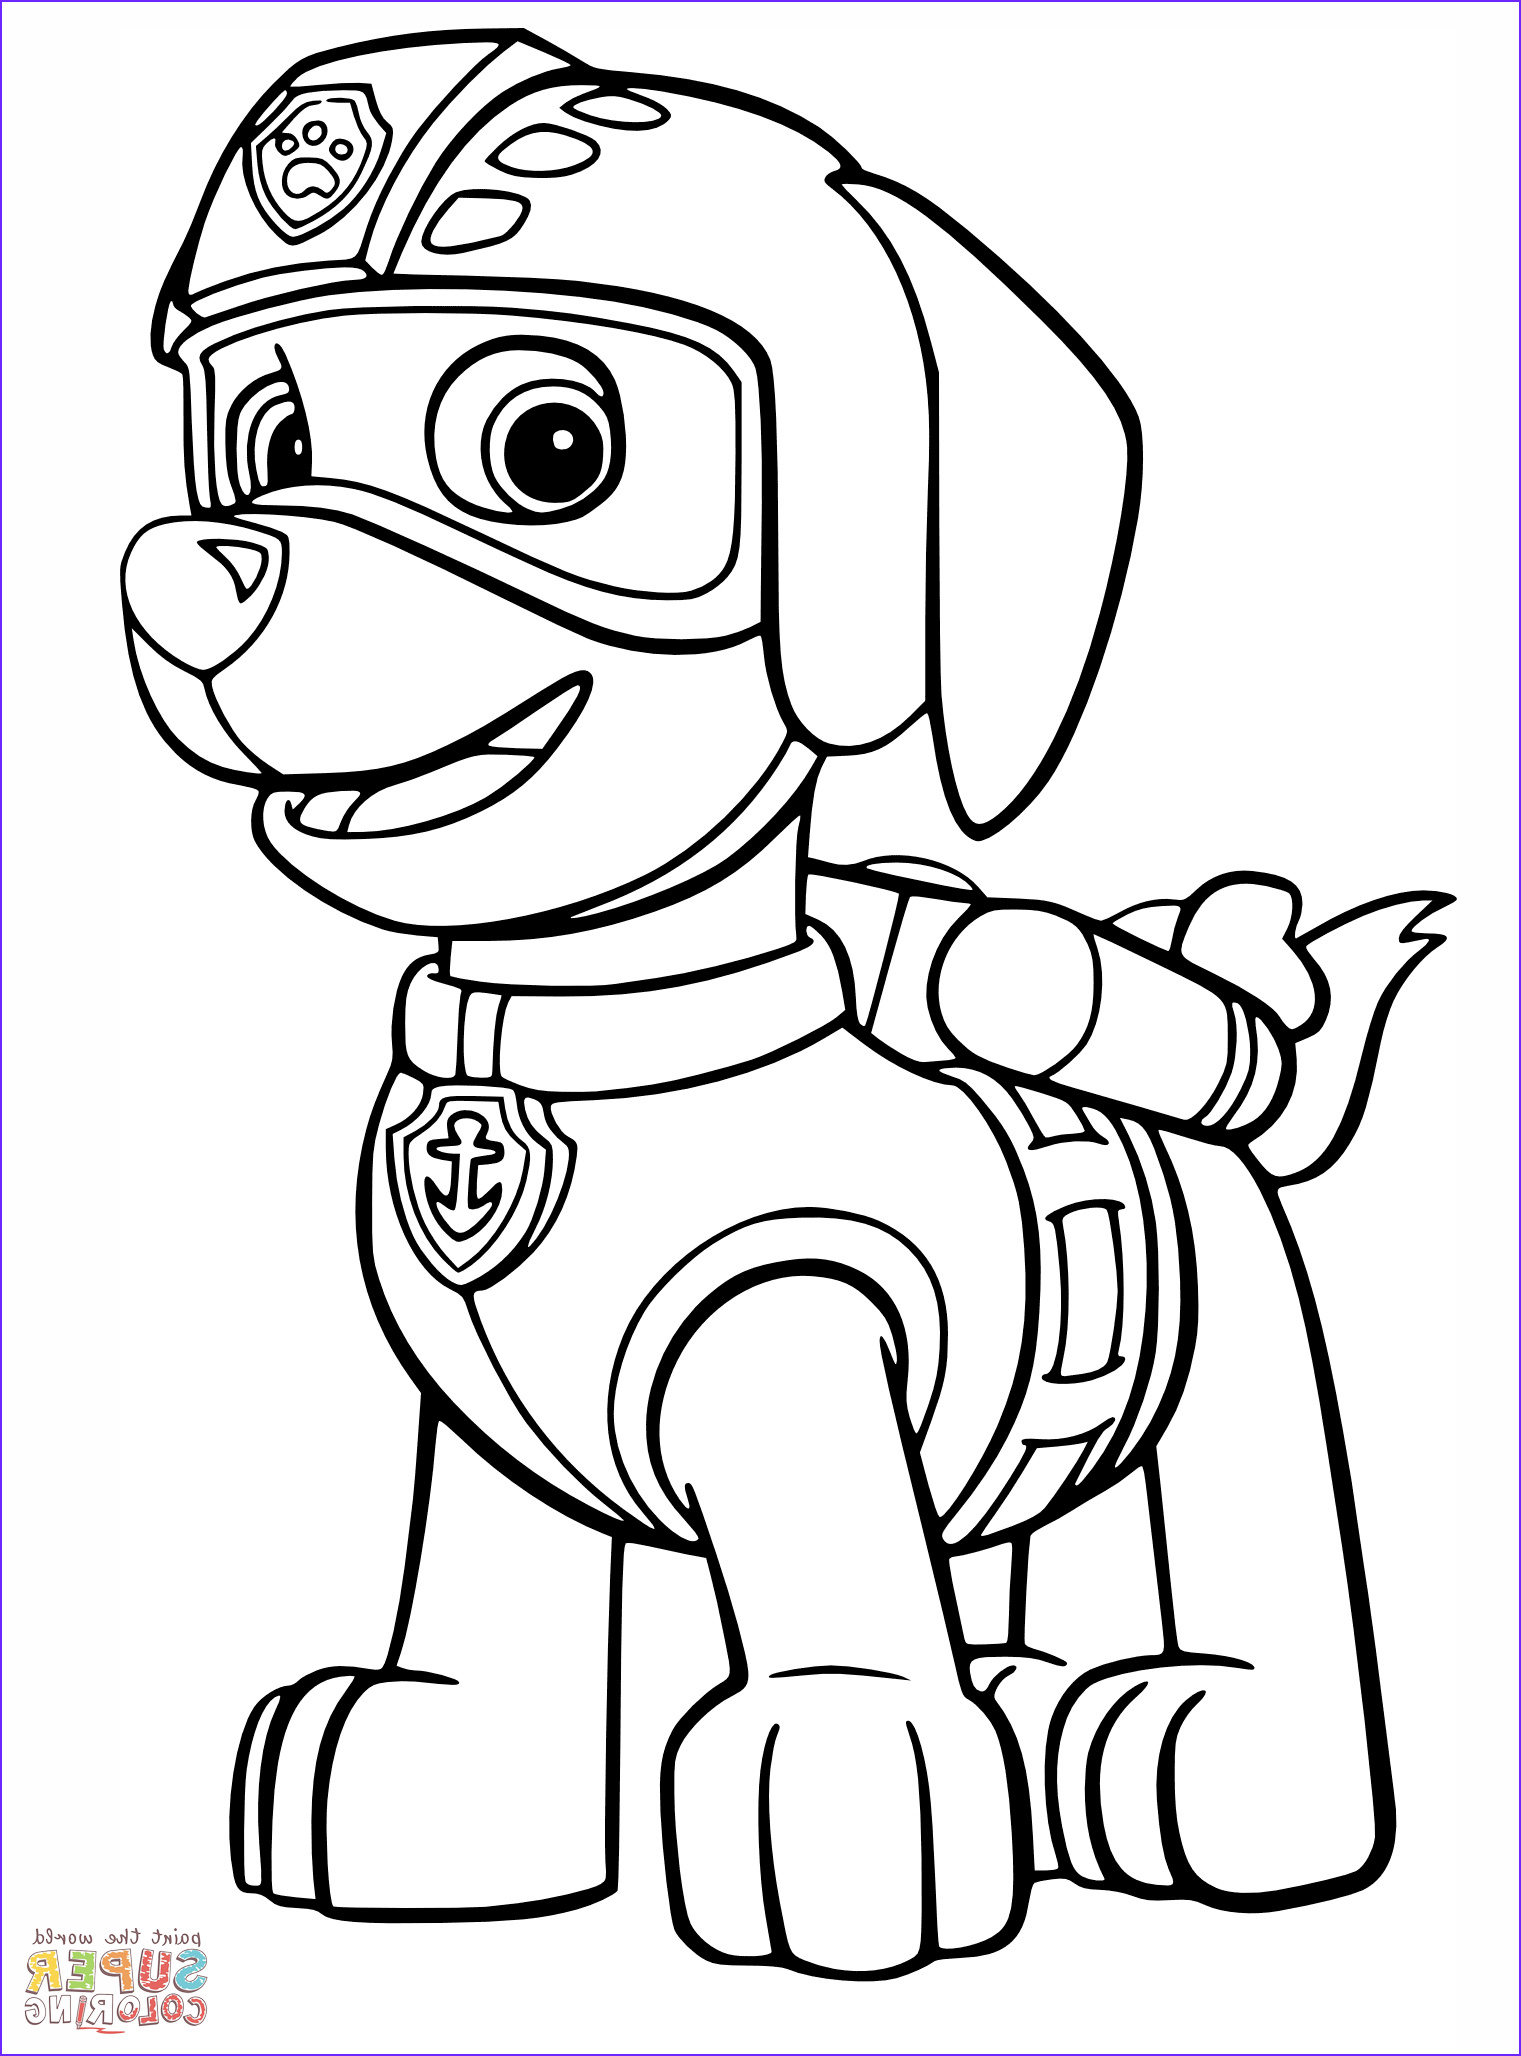 Paw Patrol Coloring Books Beautiful Images Paw Patrol Zuma Coloring Pages 01